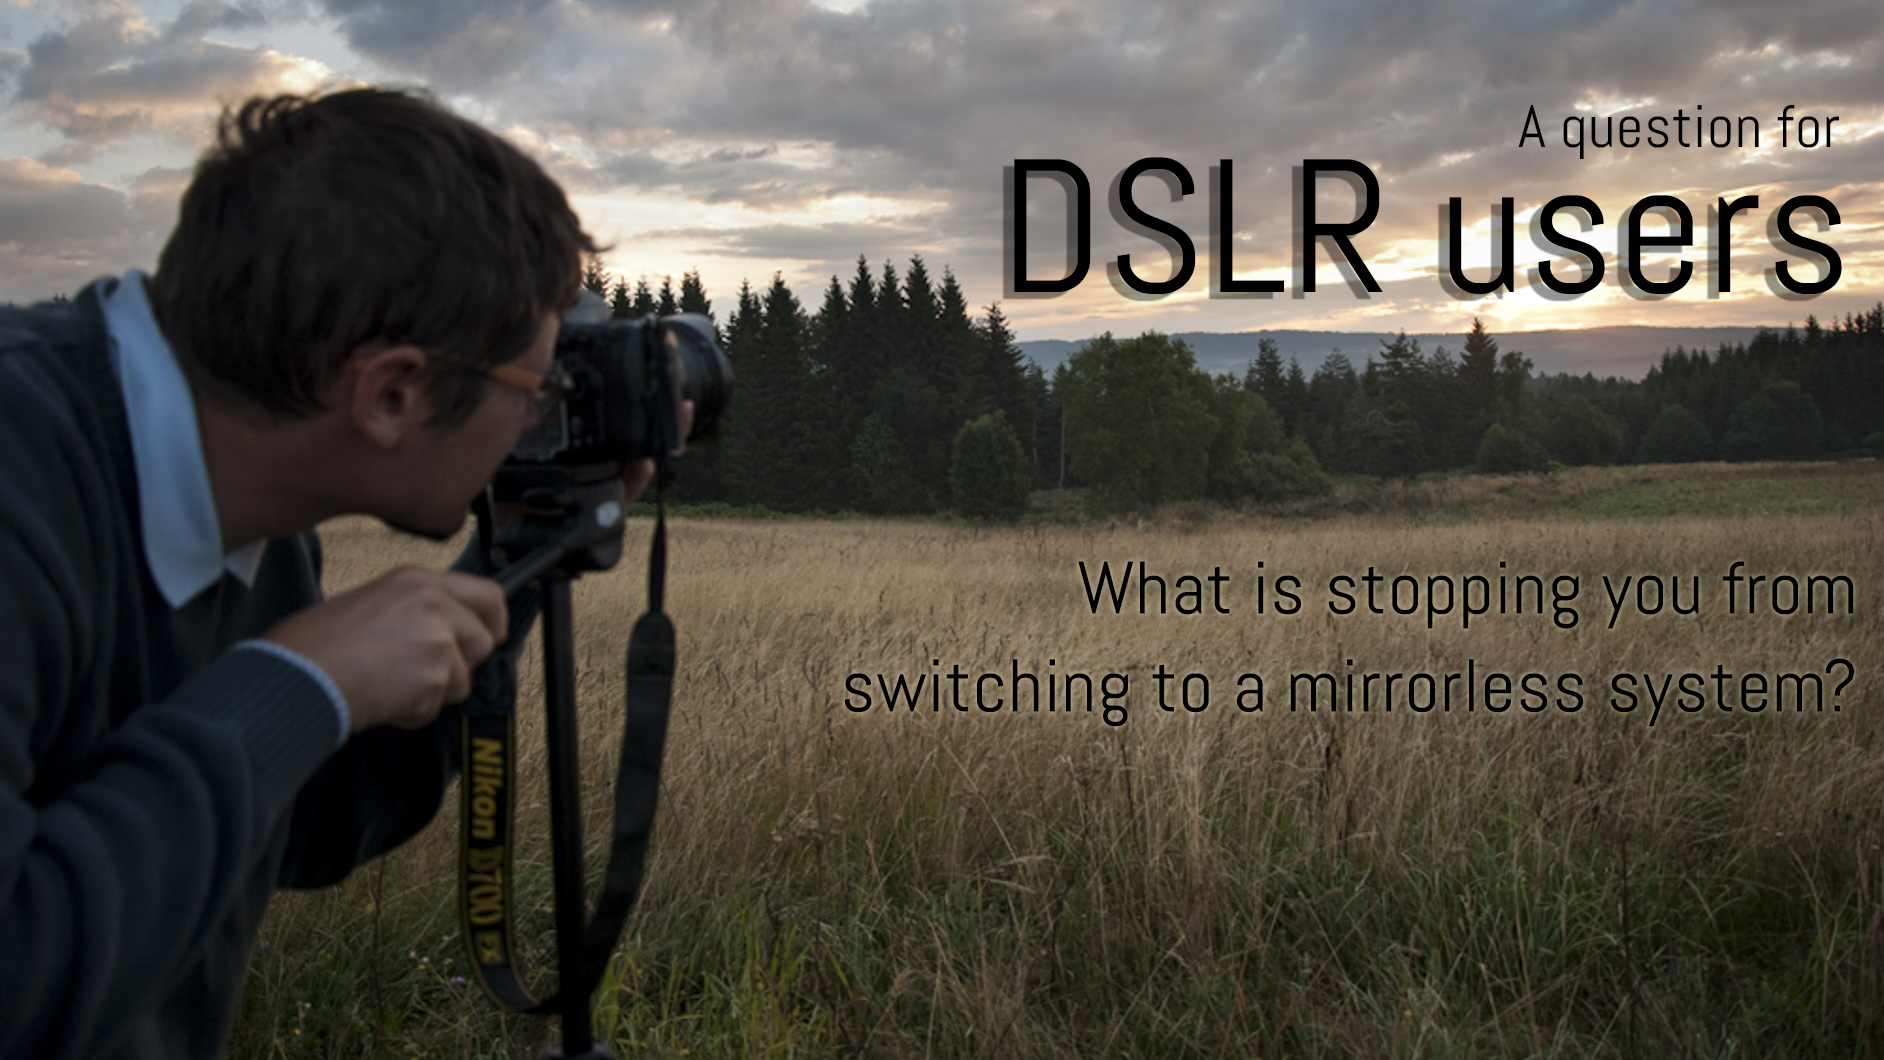 DSLR user switching over to a mirrorless camera